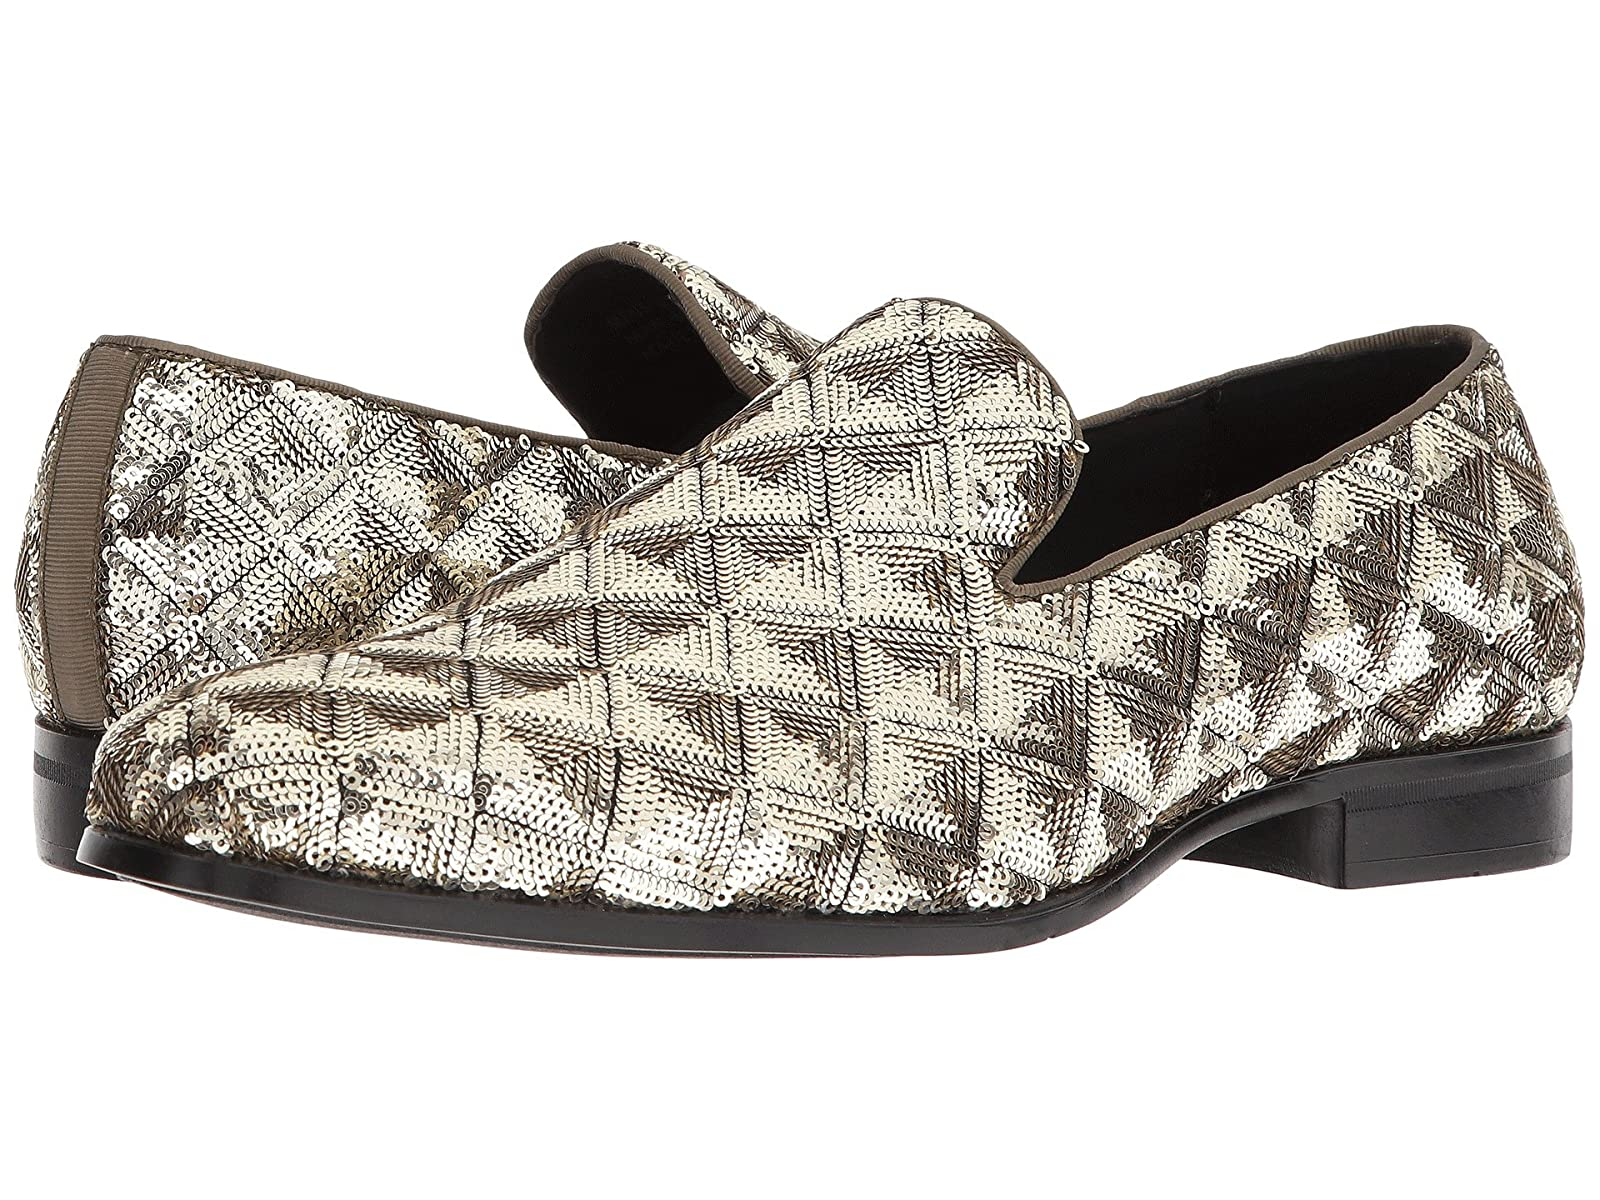 Stacy Adams SwankAtmospheric grades have affordable shoes